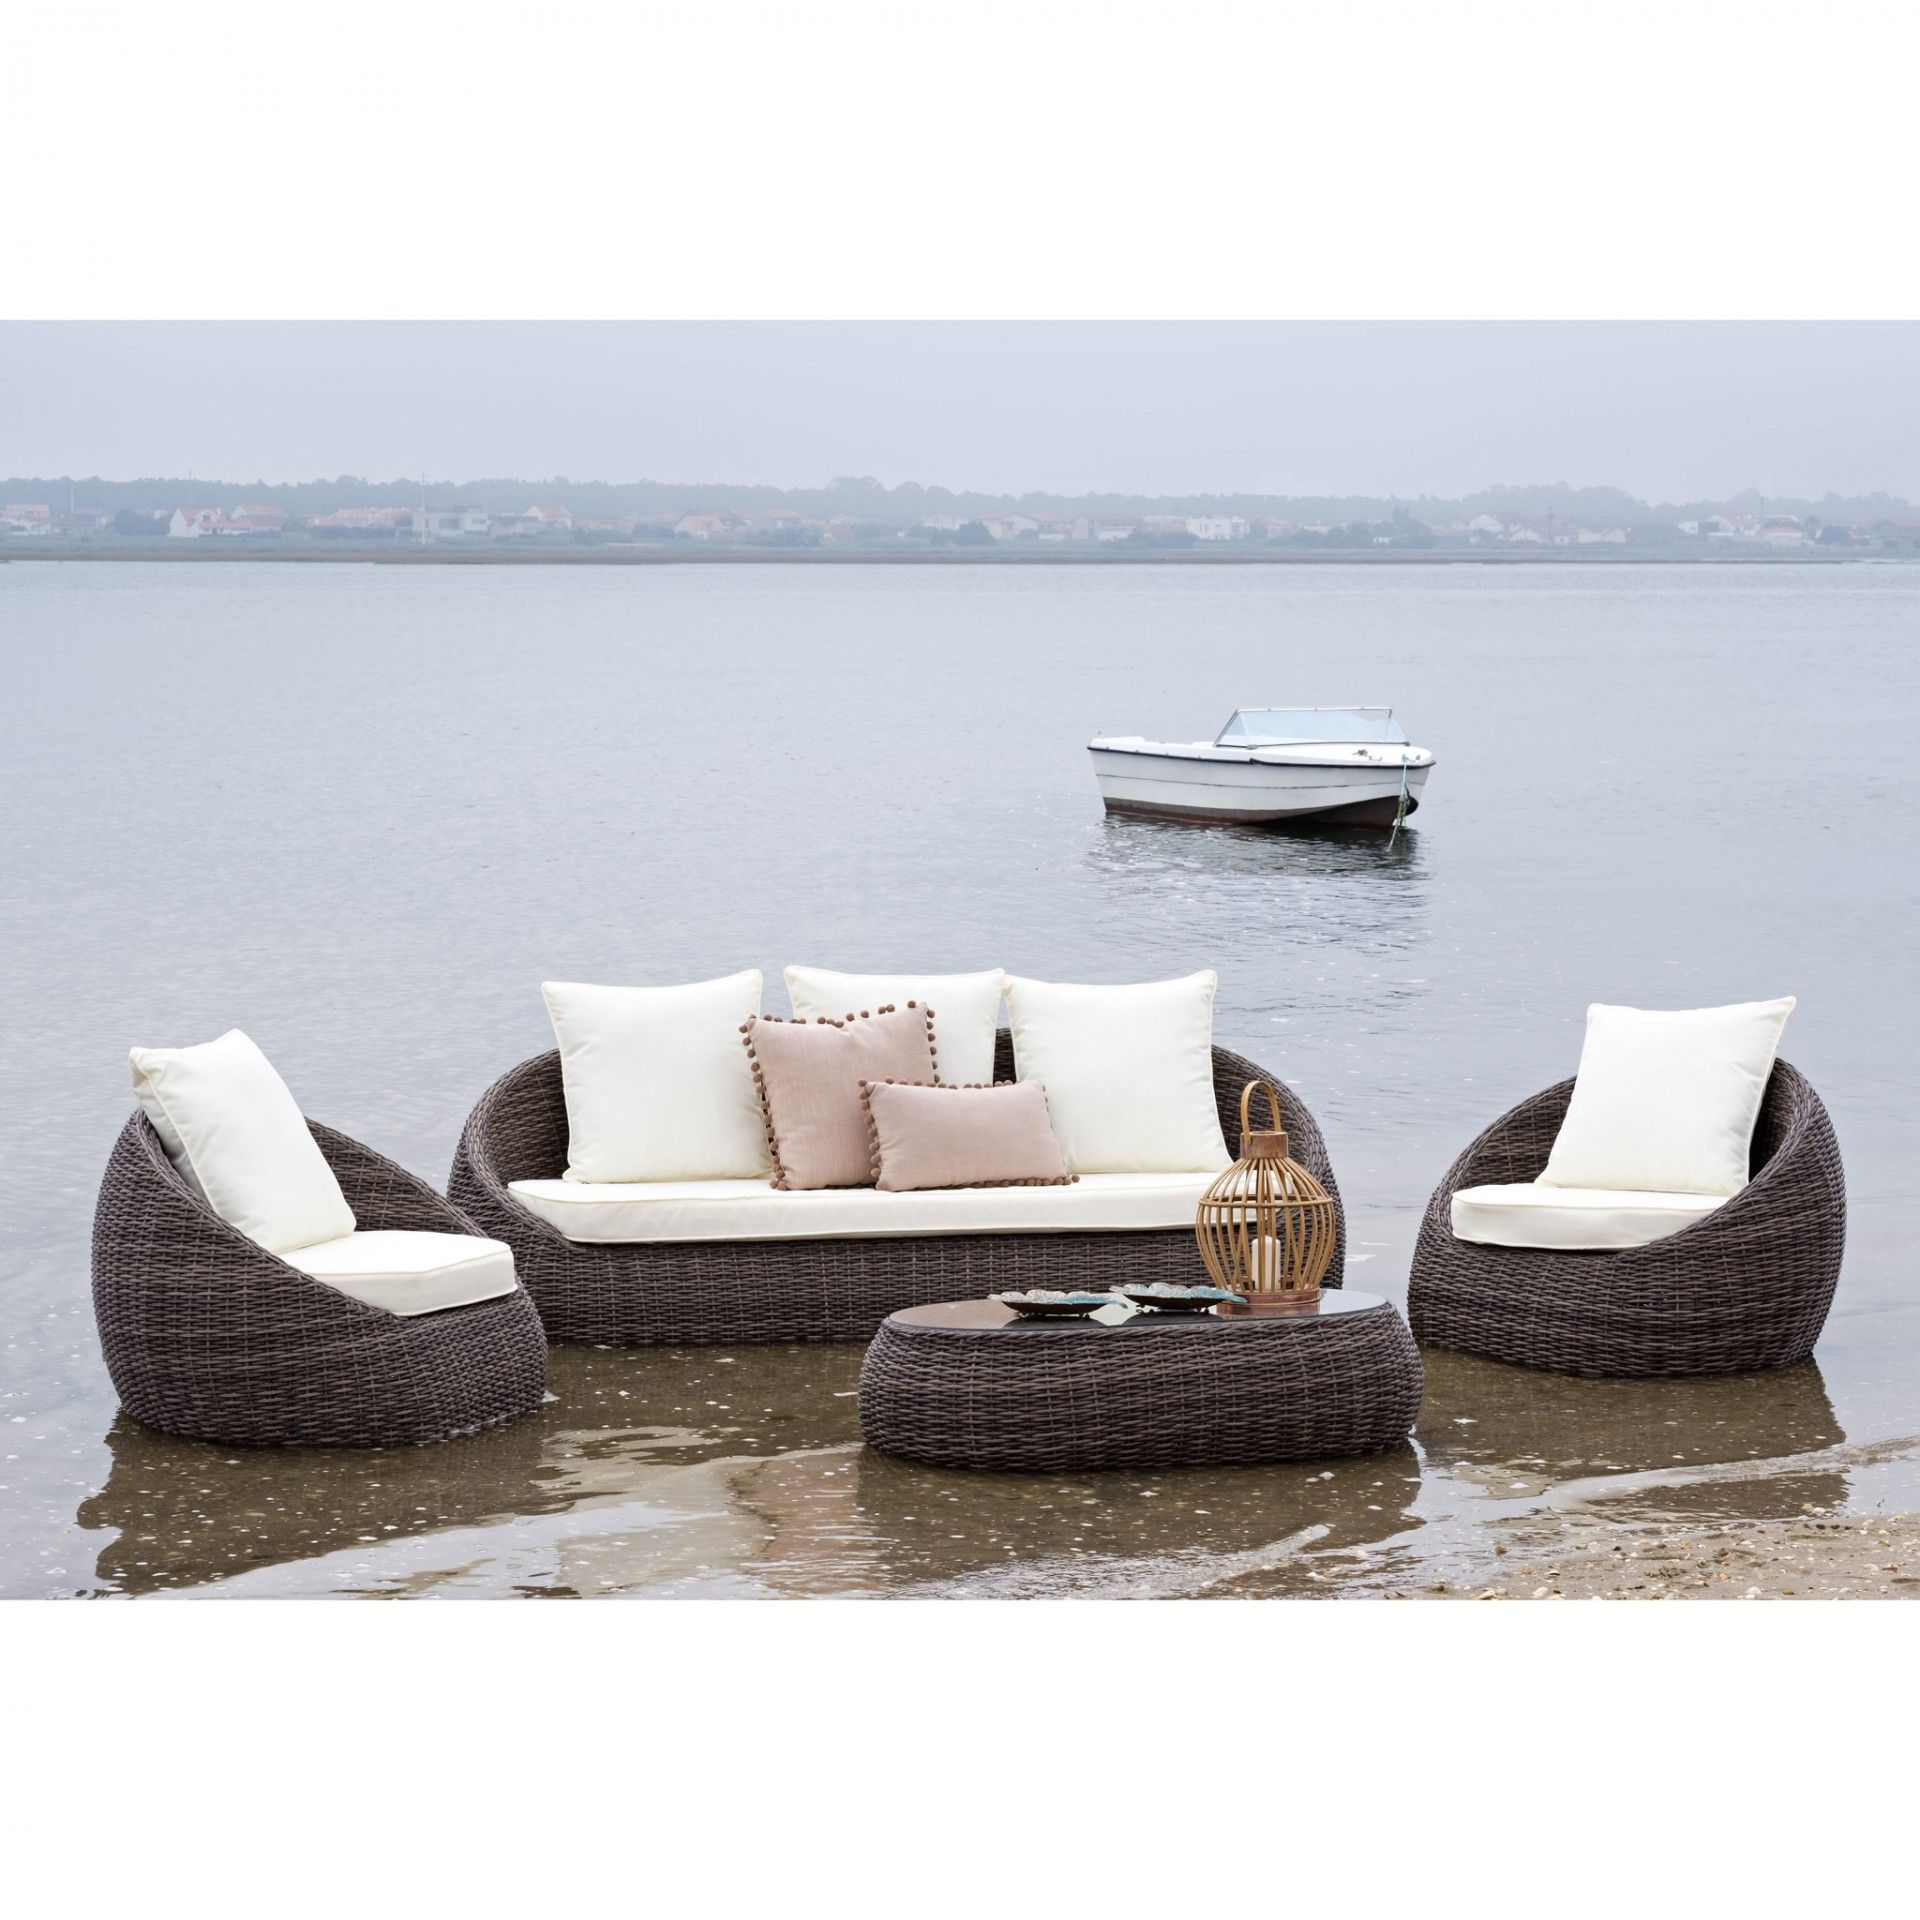 TDW Furniture Algarve Portugal Outdoor Rattan Furniture Set